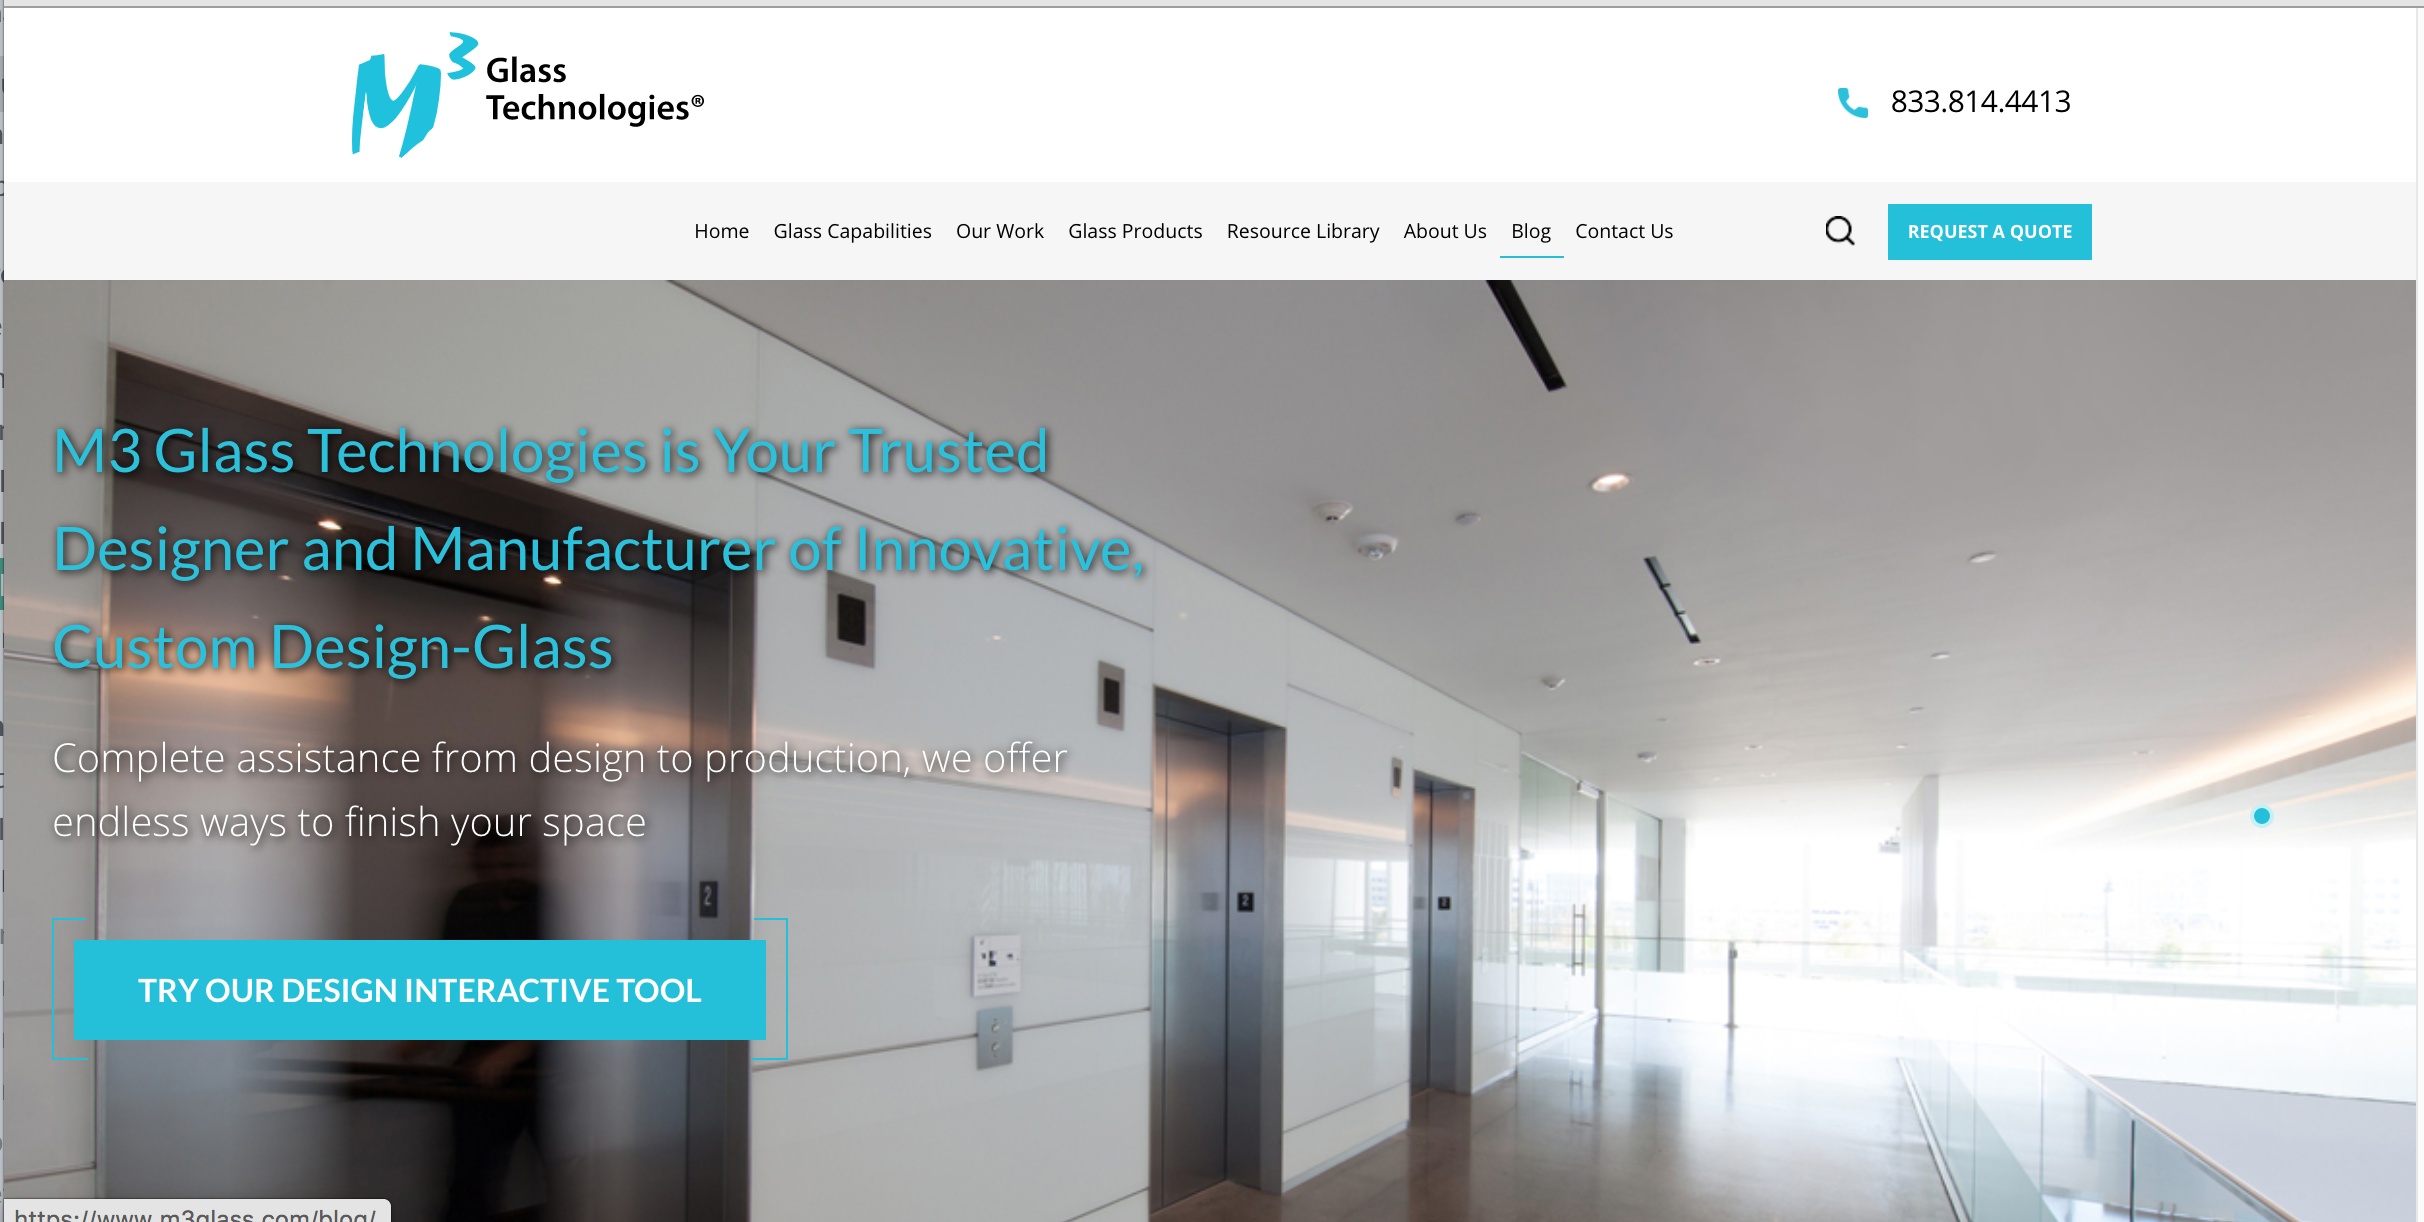 M3 glass technologies - Industrial Website Example